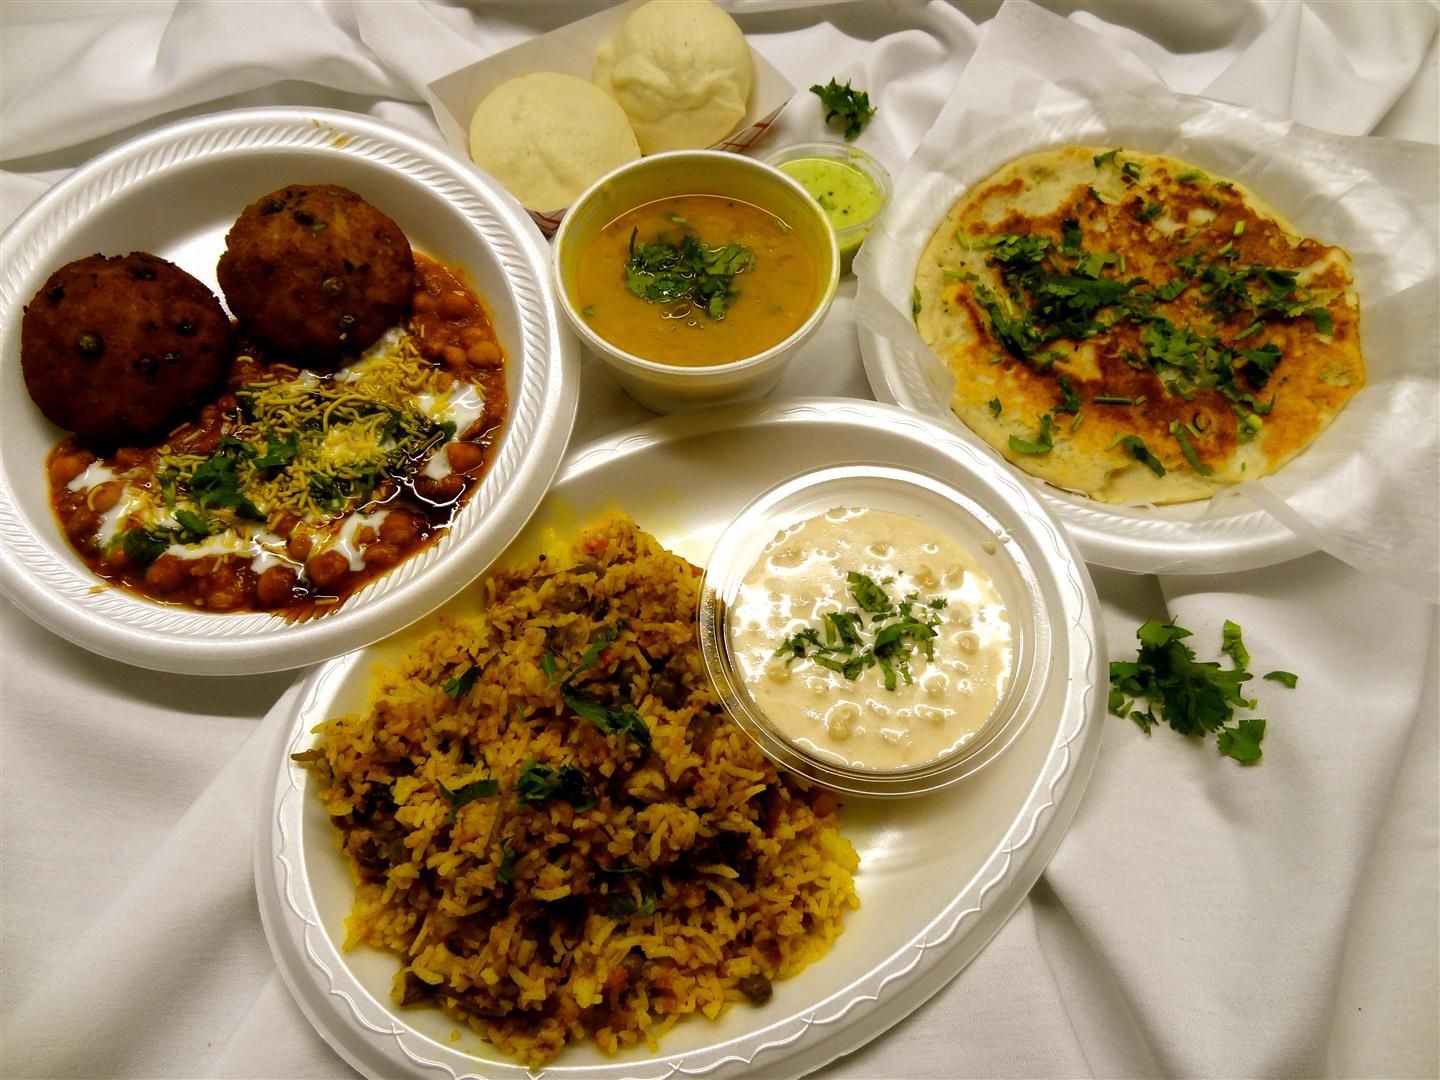 Ay Sweets 3401 S 13th Street Milwaukee Wi 53215 Vegetarian Restaurant Featuring Indian And Stani Foods